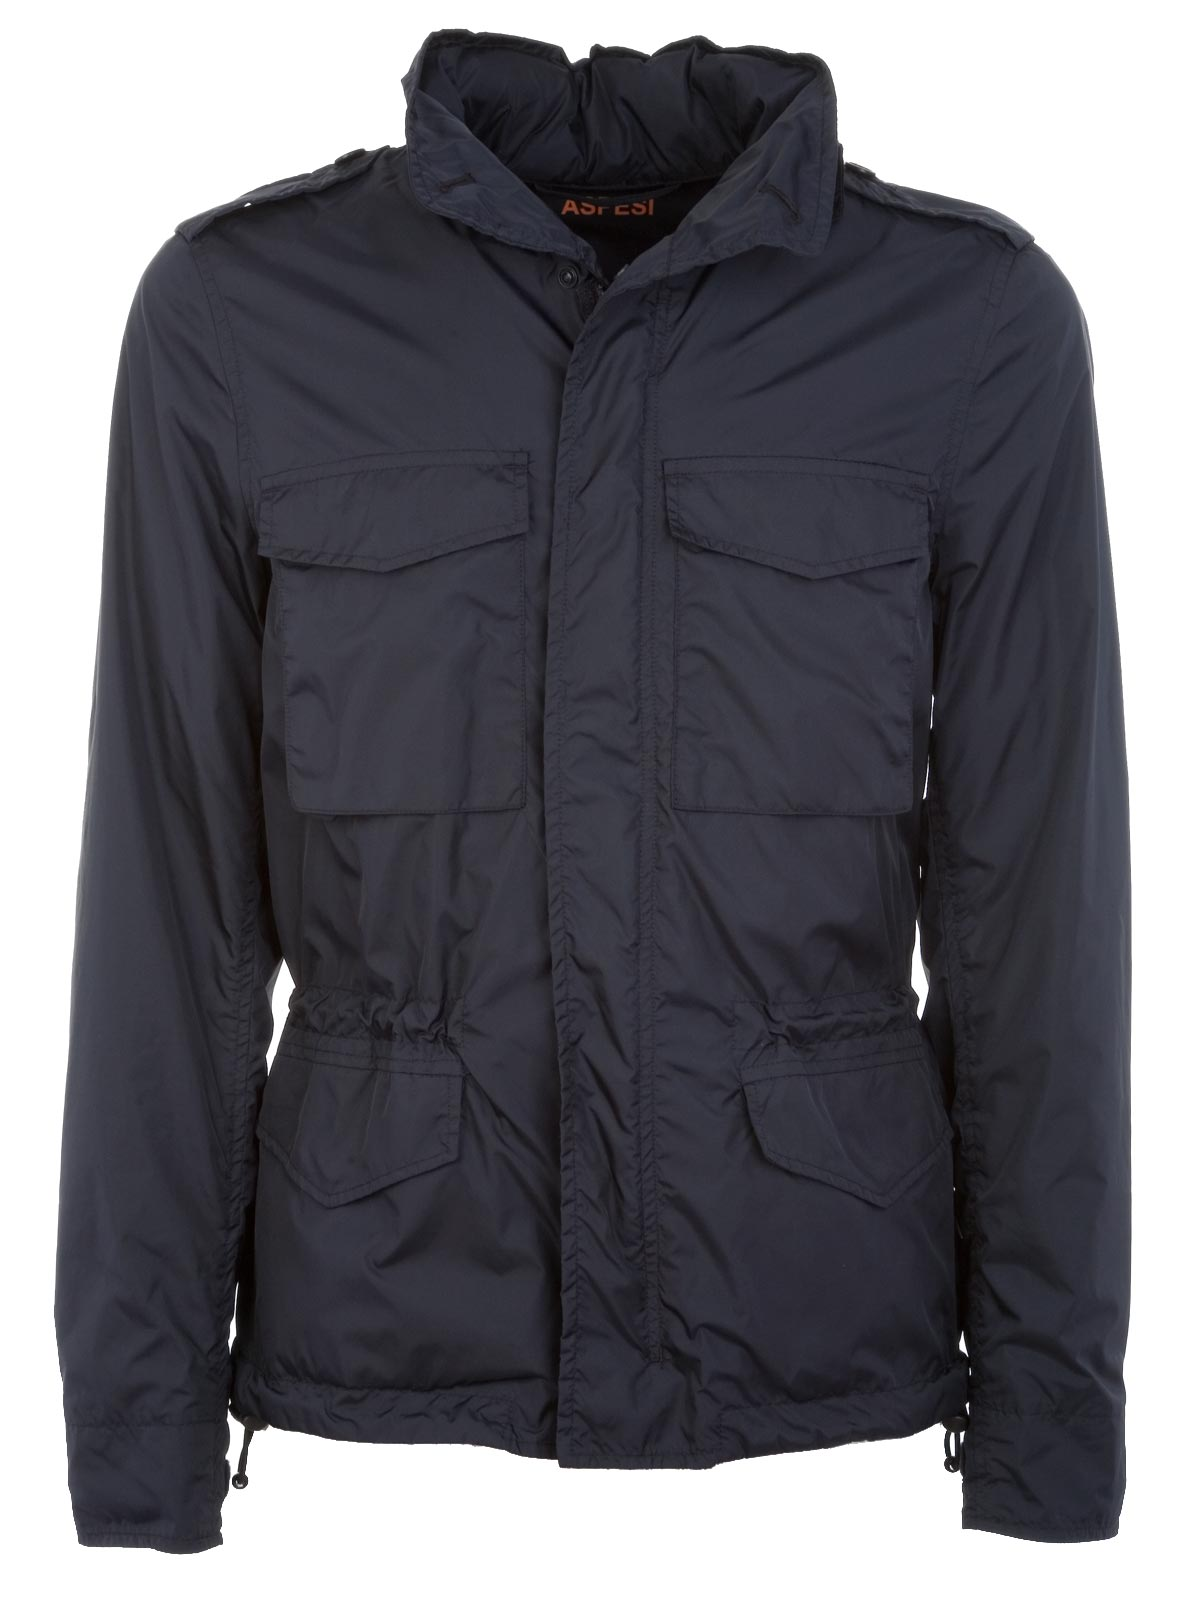 Picture of Aspesi Minifield Vento Jacket